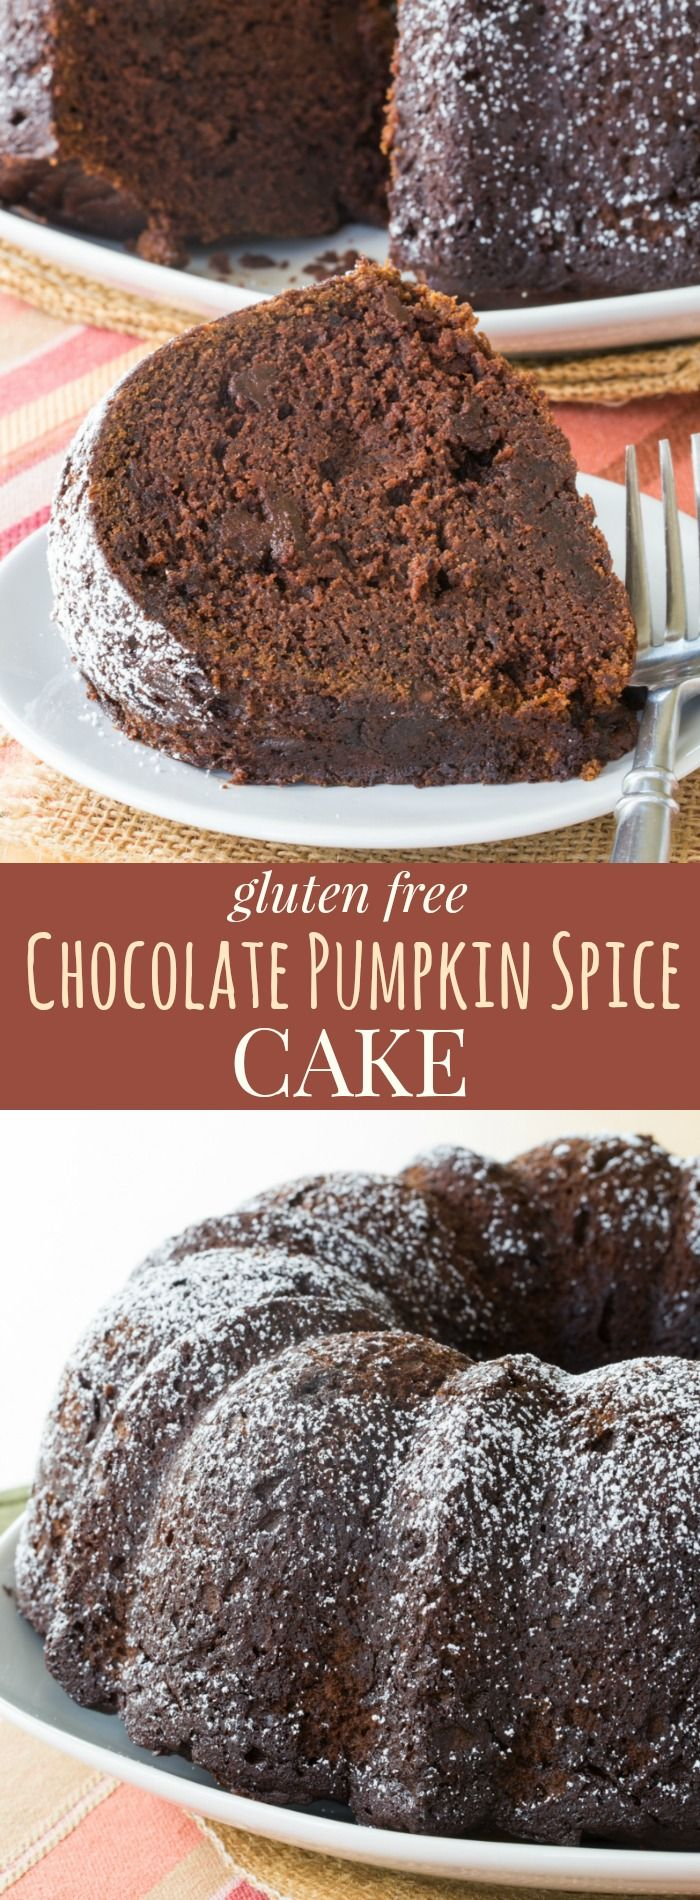 Gluten Free Chocolate Pumpkin Spice Cake - bundt cake recipe for a fall dessert